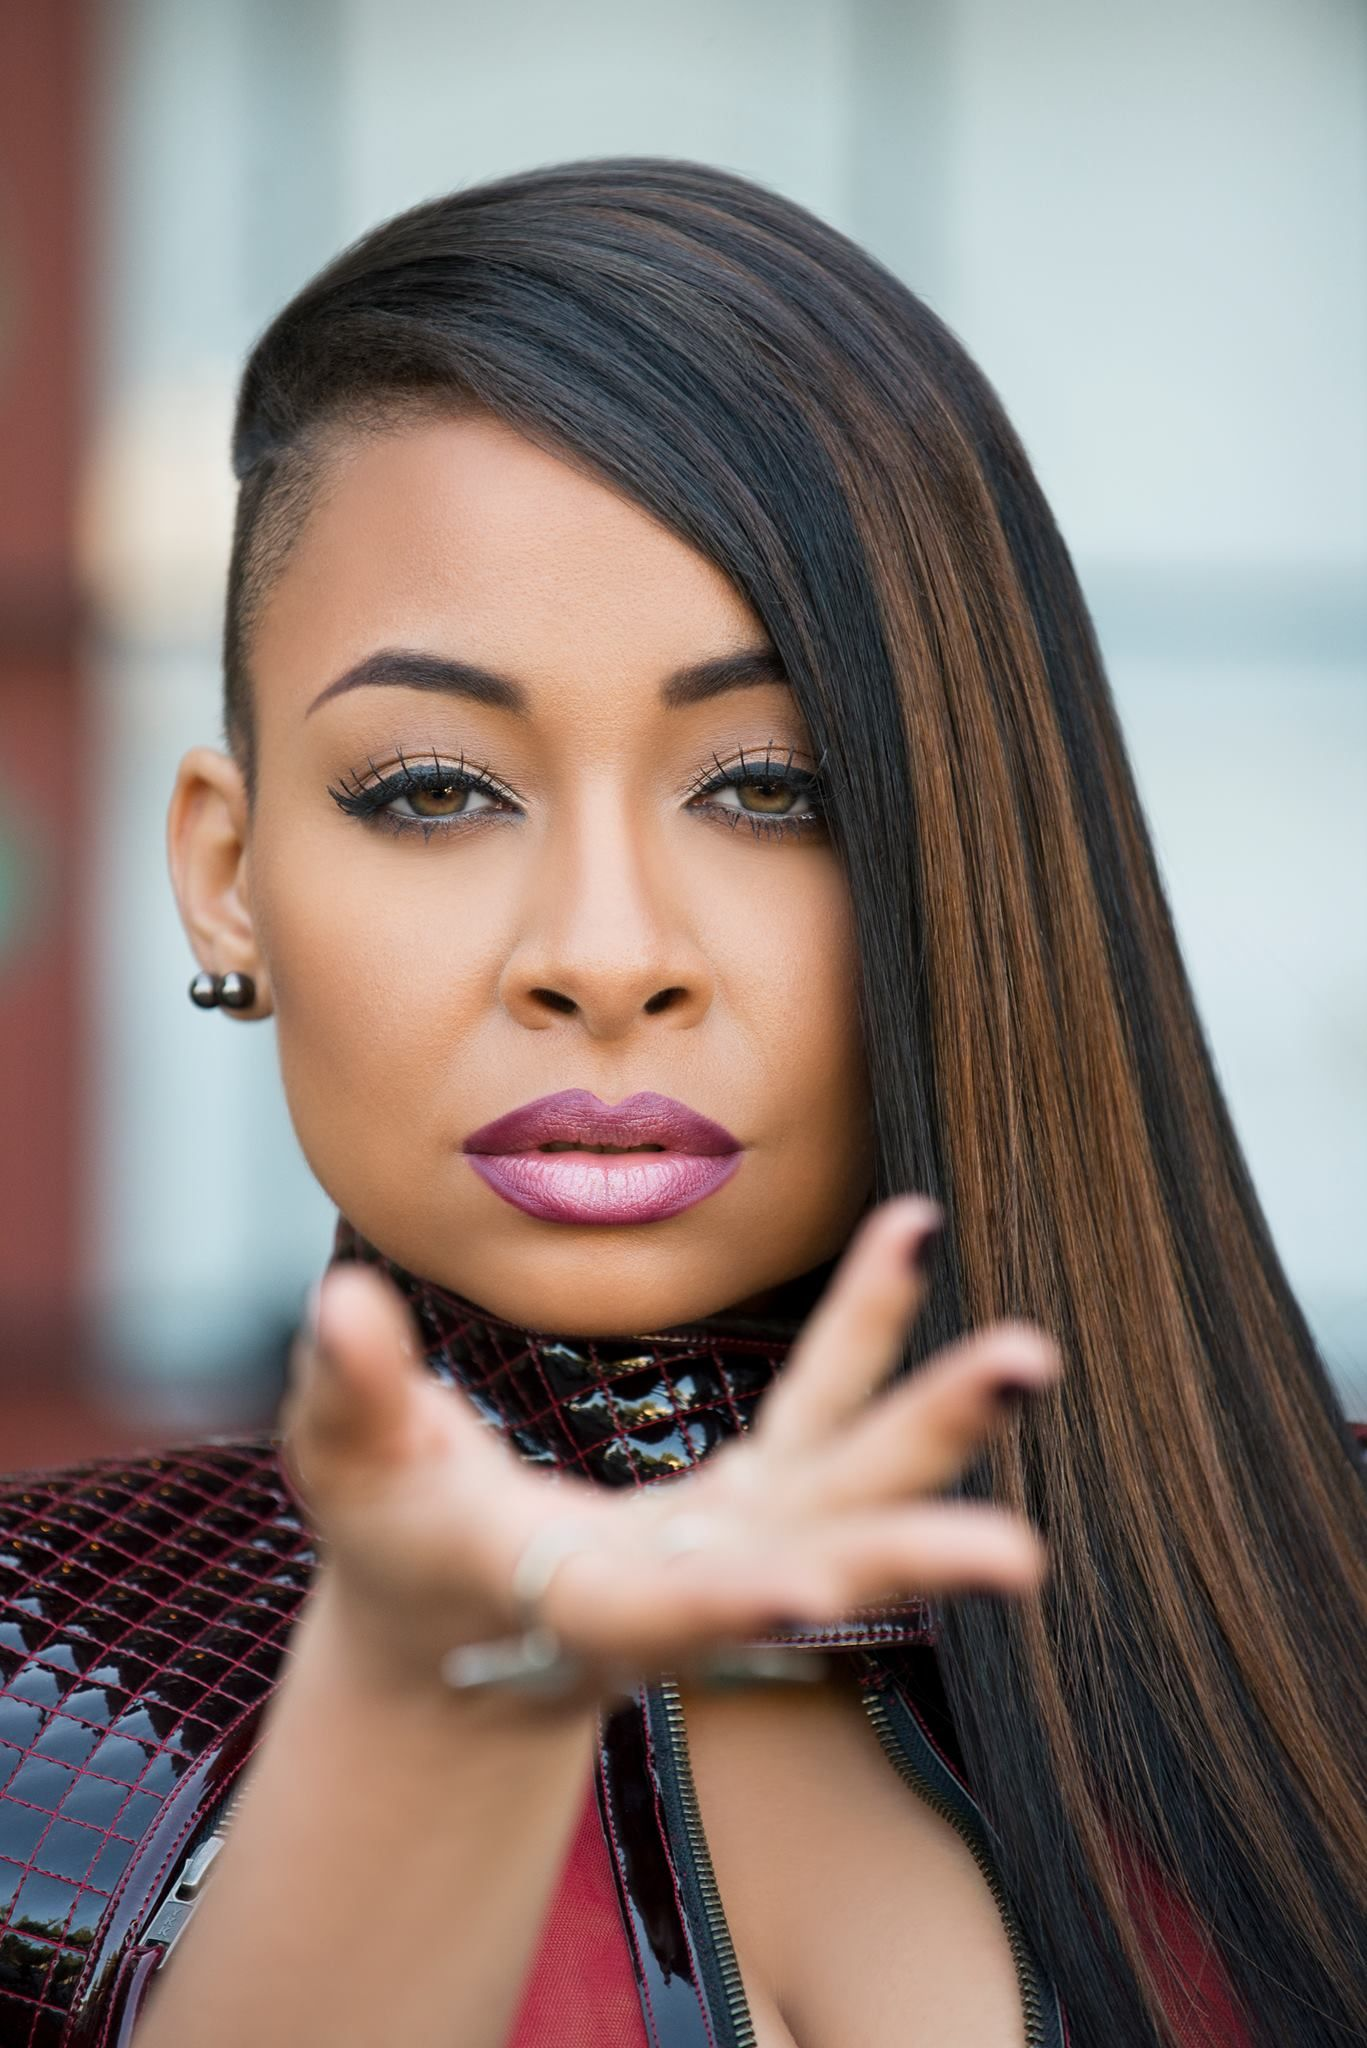 Raven Symone Hairstyles : raven, symone, hairstyles, Raven-Symone, Defends, Views, Gives, Advice, Create, Perfect, Diary, Shaved, Hairstyles,, Undercut, Hairstyles